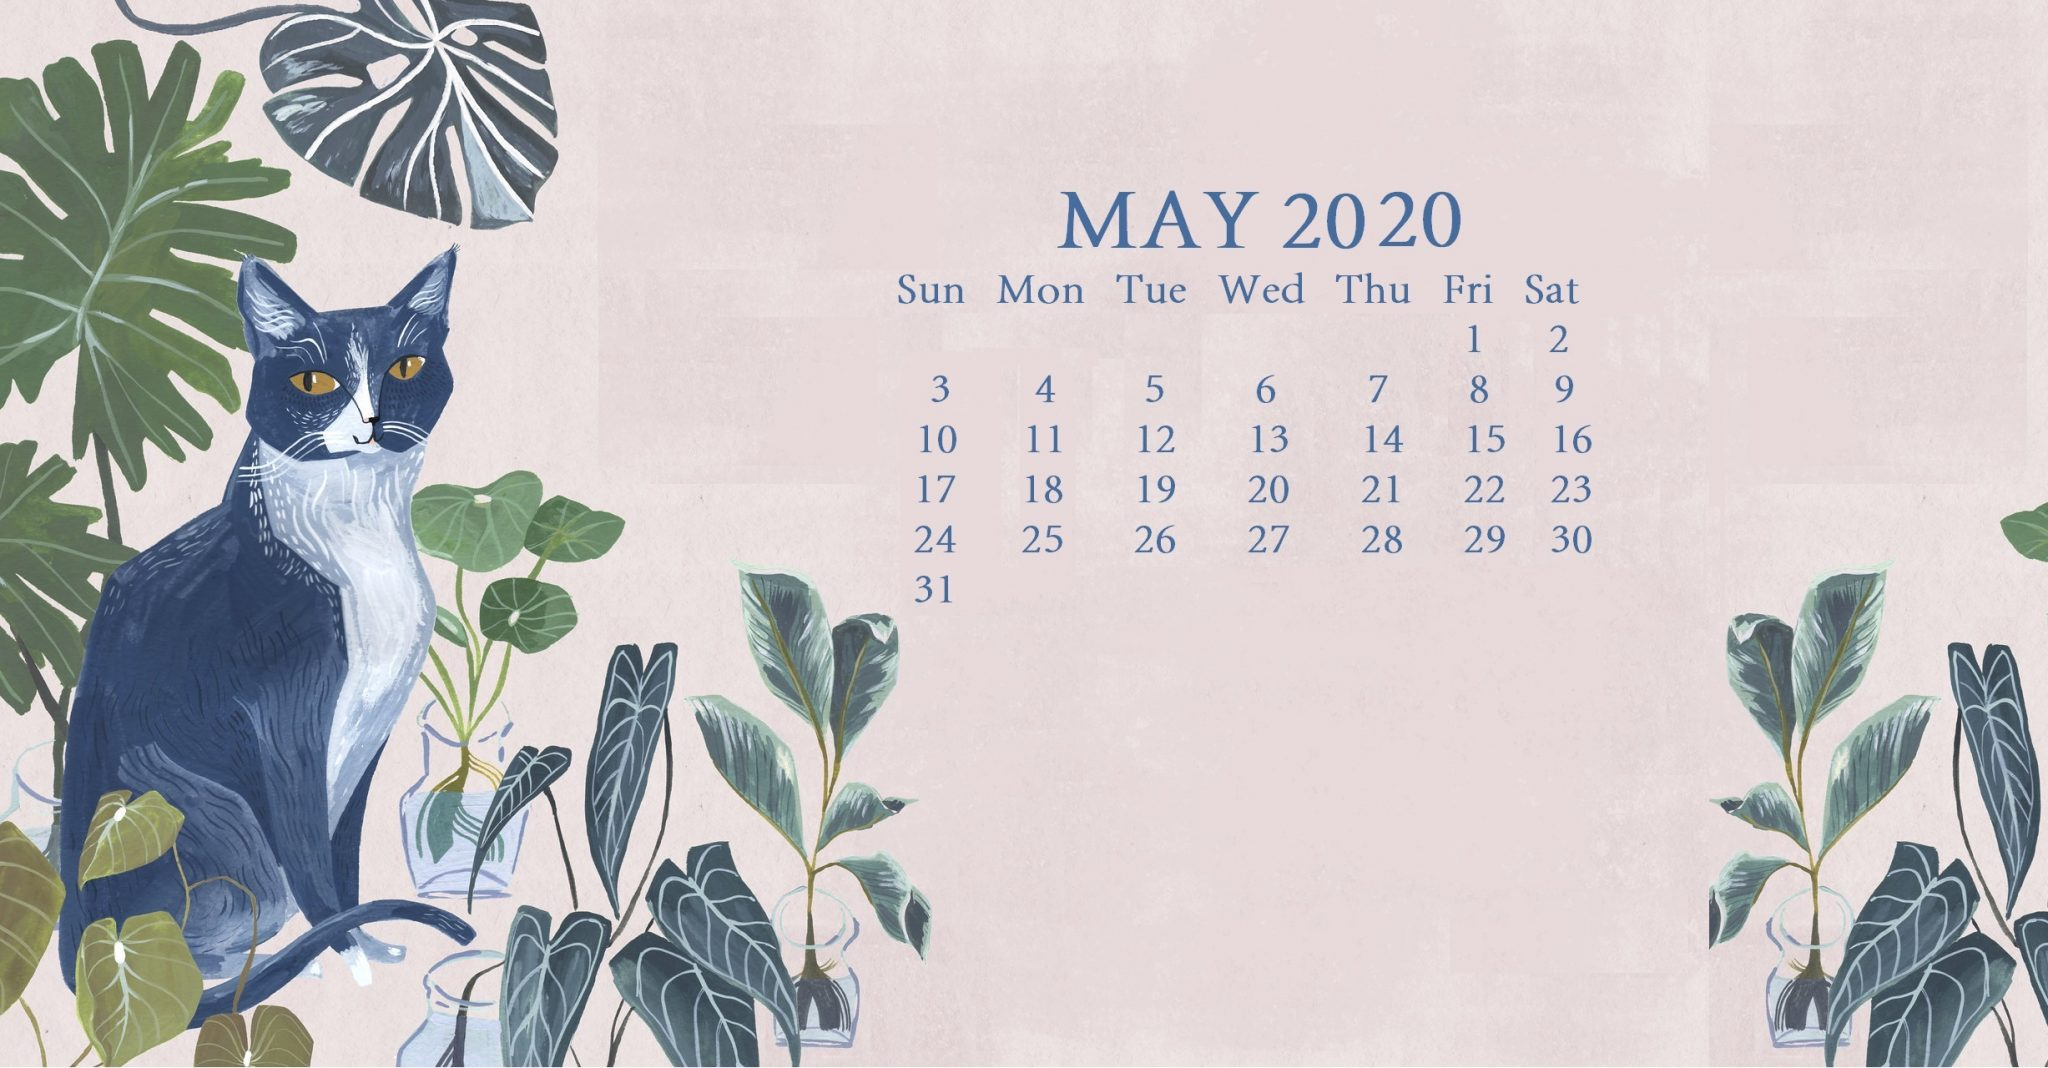 Cute May 2020 Calendar Wallpaper